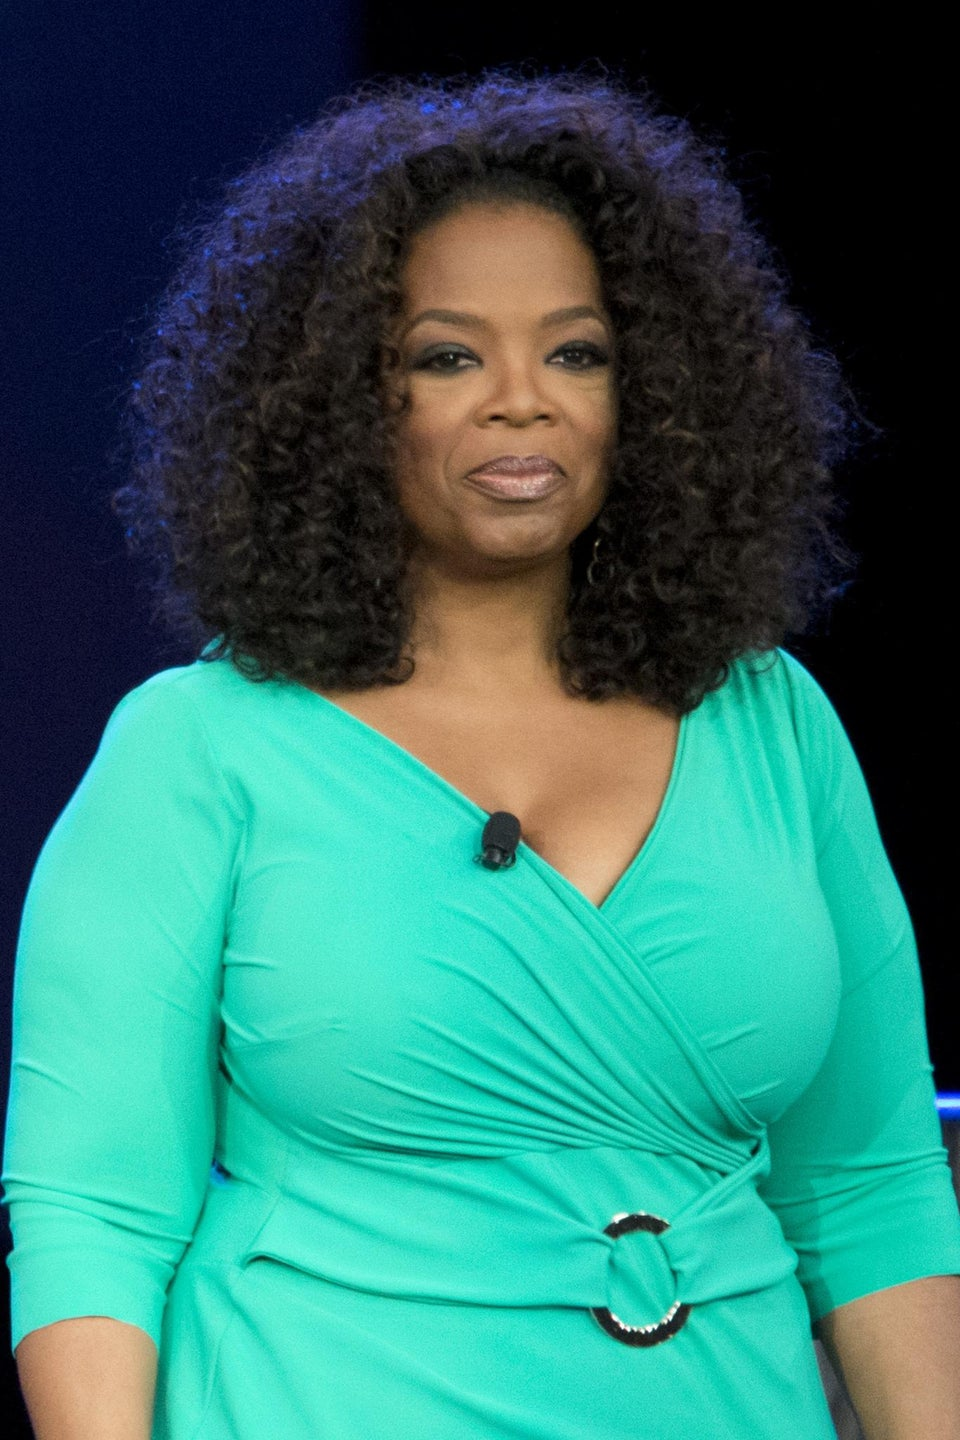 HBO to Develop Comedy From Oprah